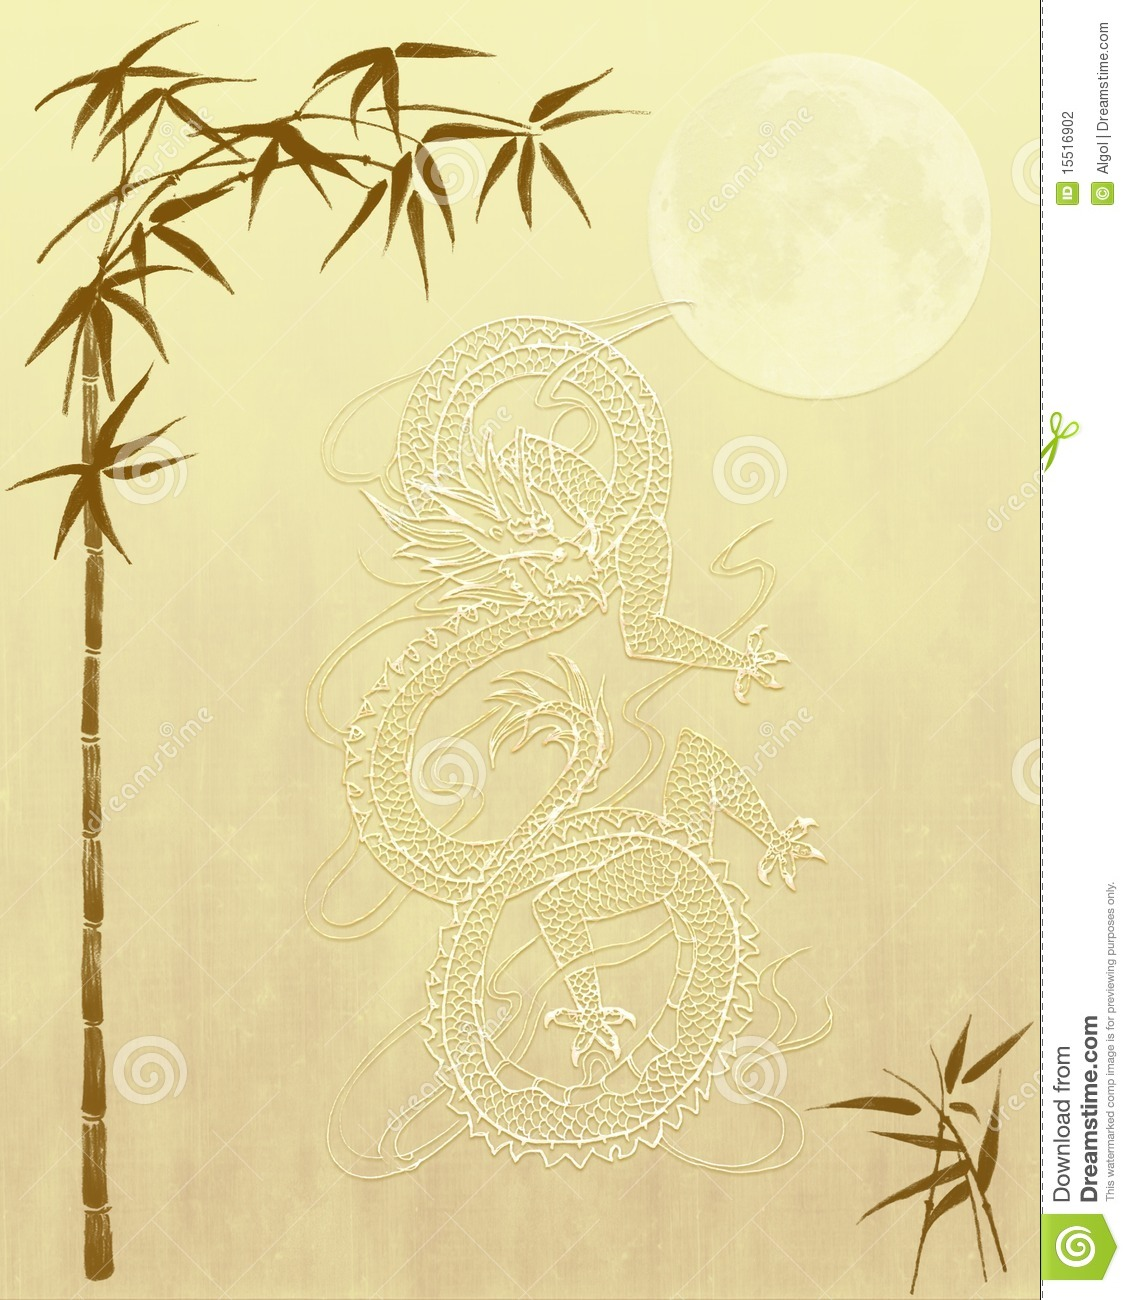 Fall Leaves Wallpaper Powerpoint Background Chinese Dragon And Bamboo Background Paper Stock